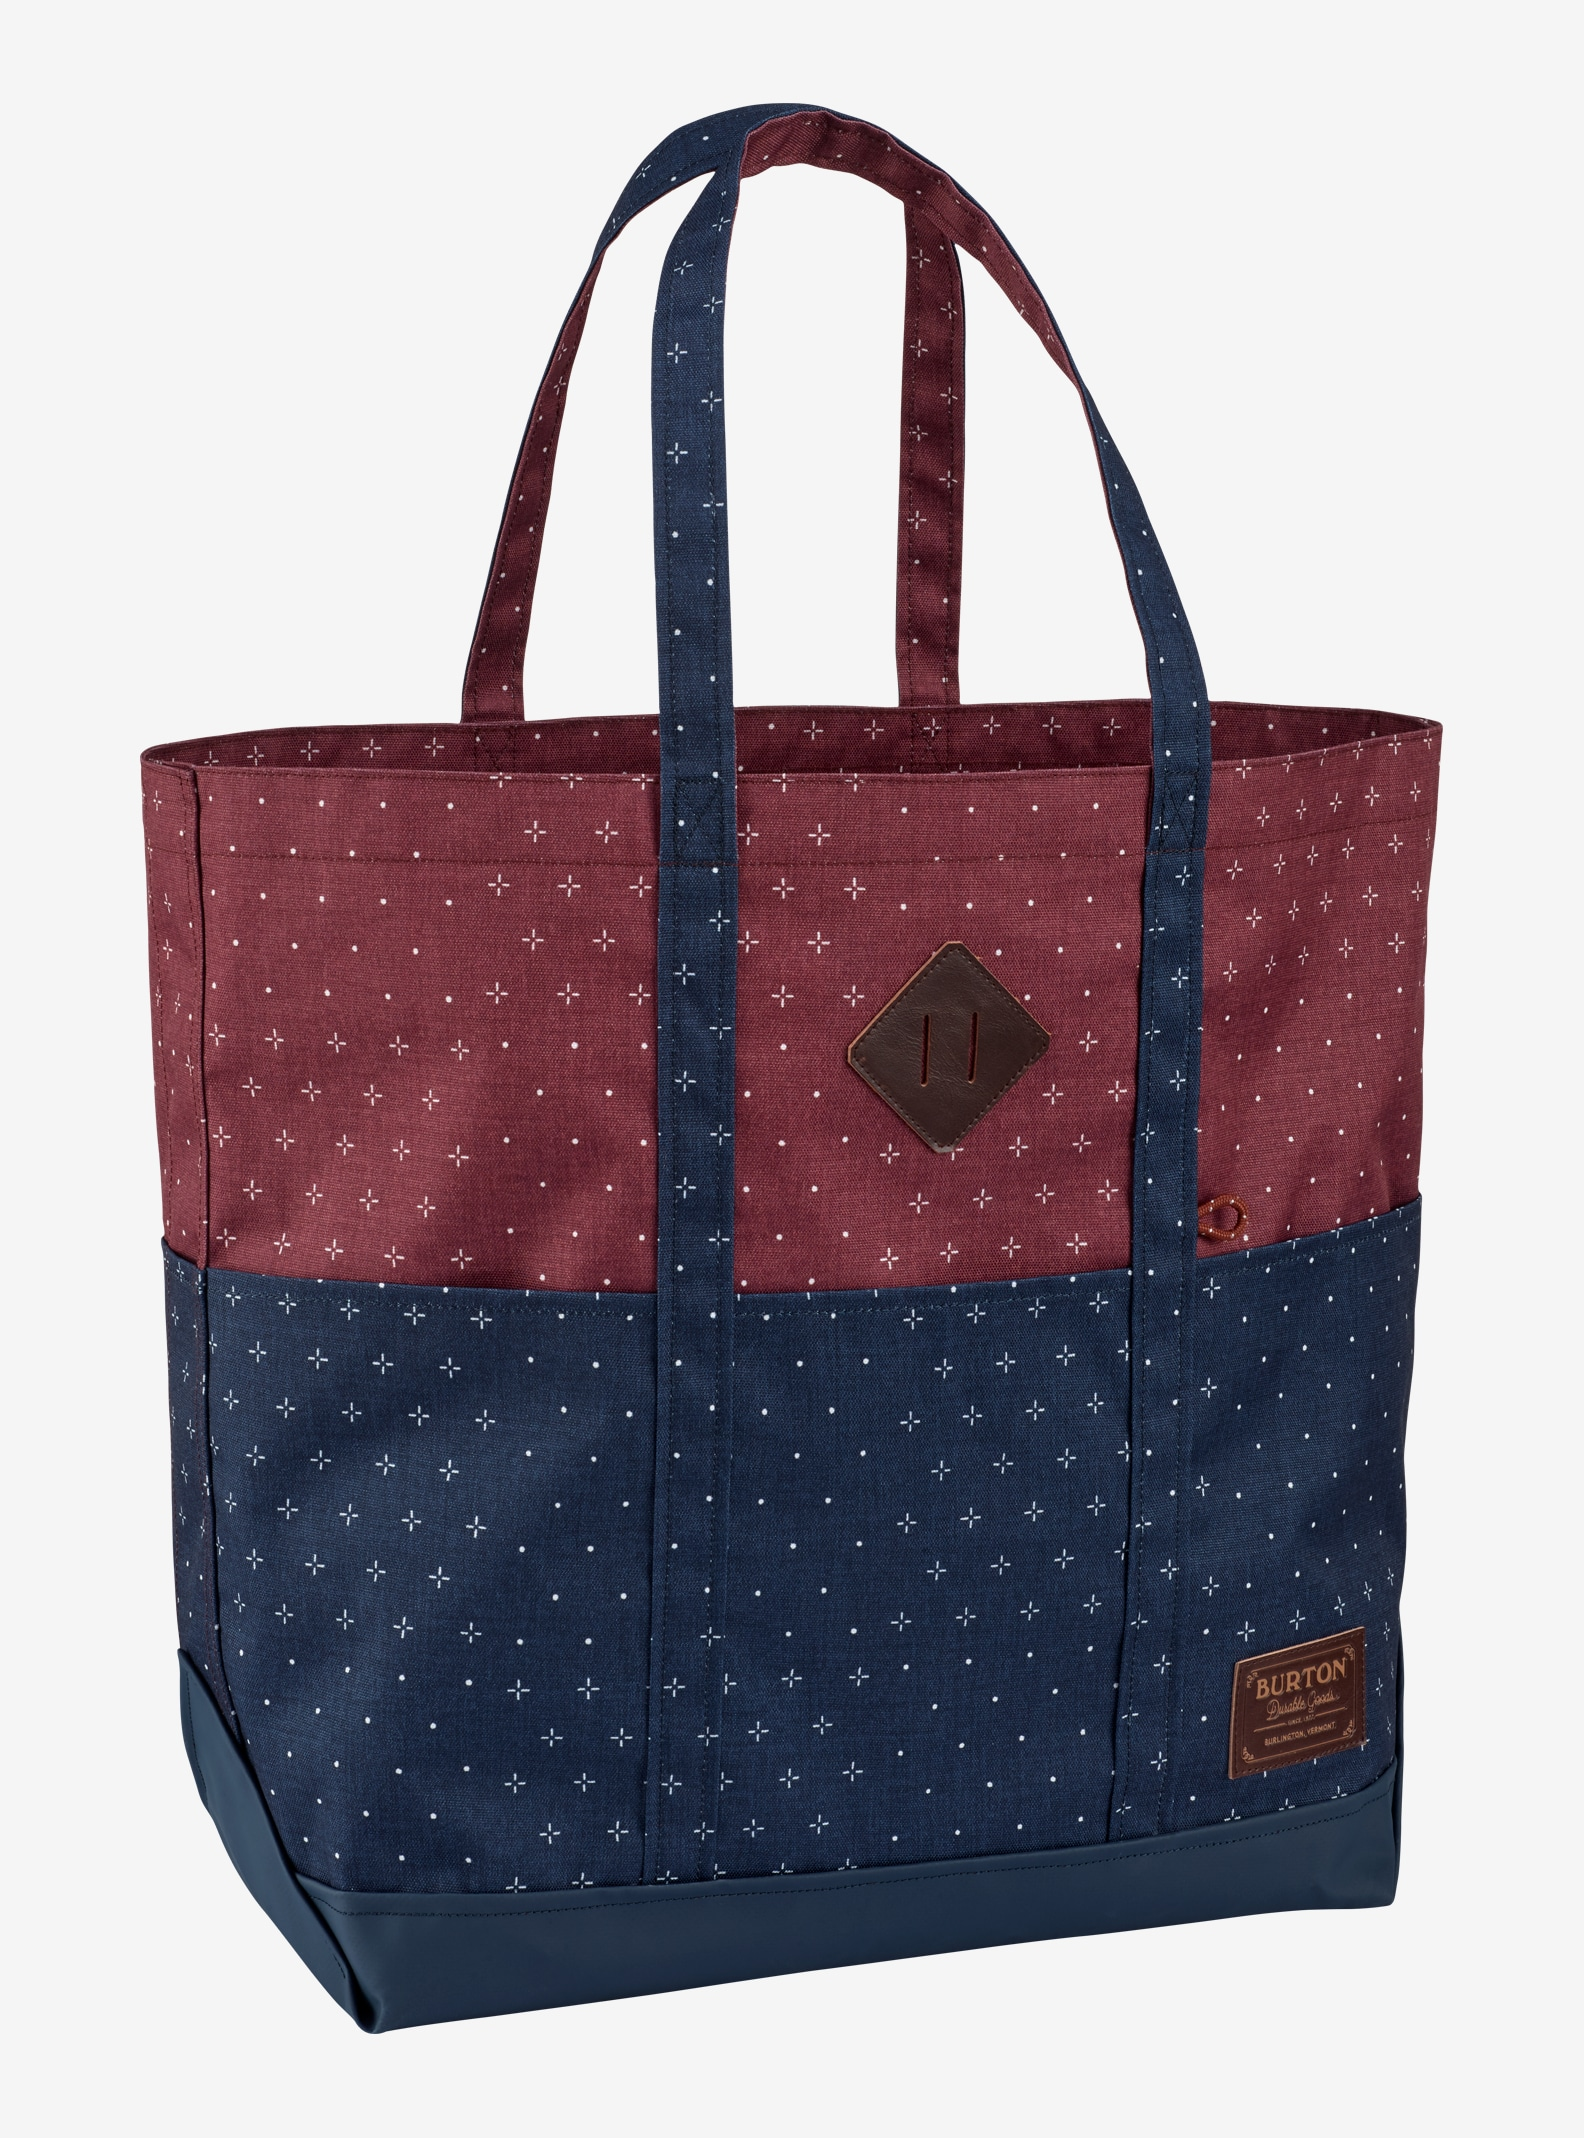 Burton Crate Tote Bag - Large shown in Mandana Print